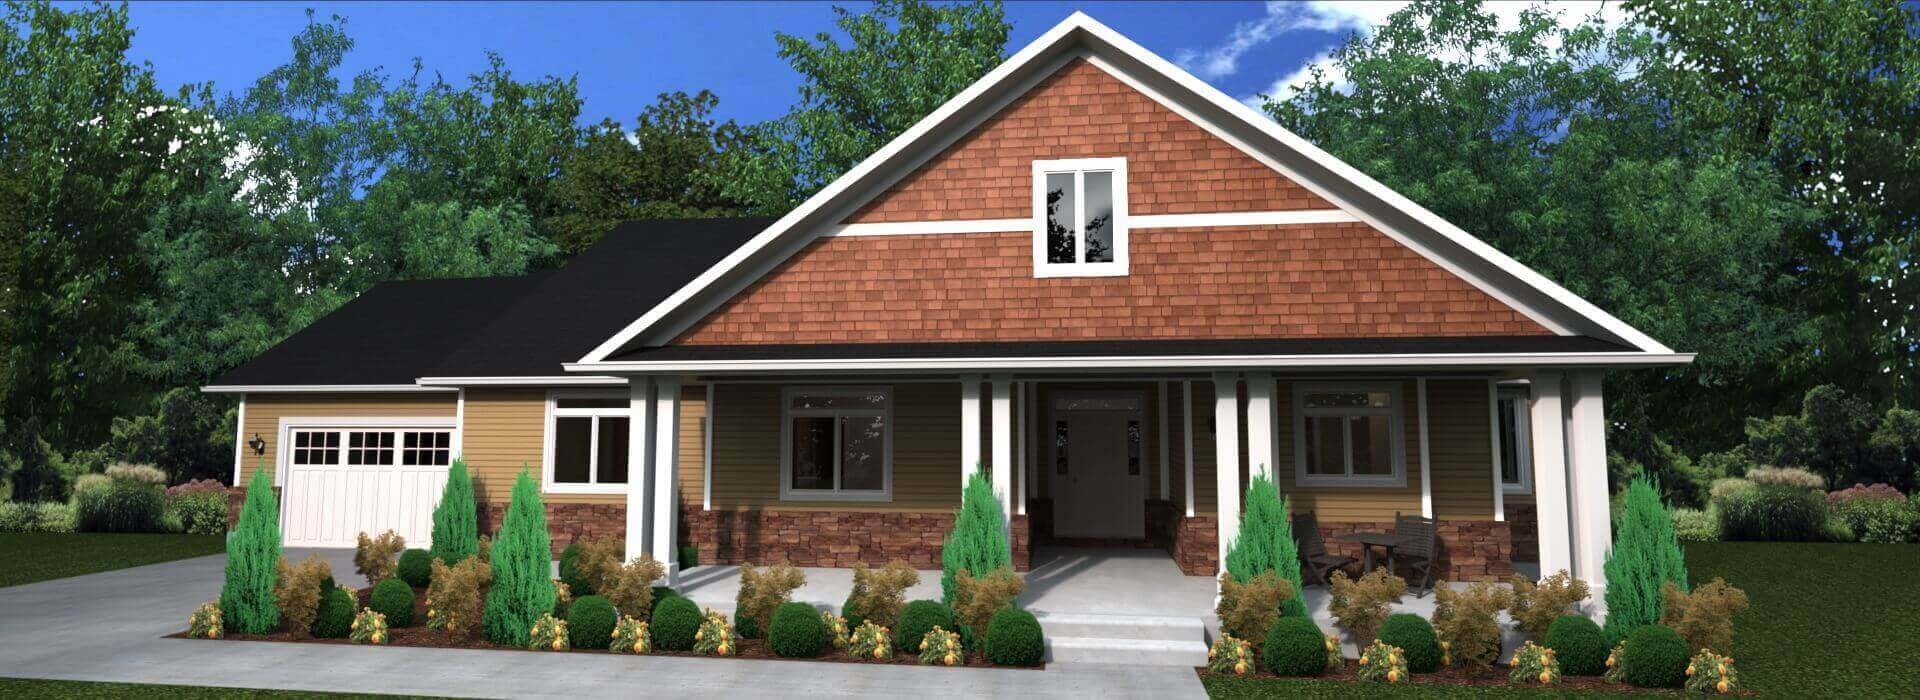 2297 sq.ft. timber mart house 3 bed 2.5 bath exterior render